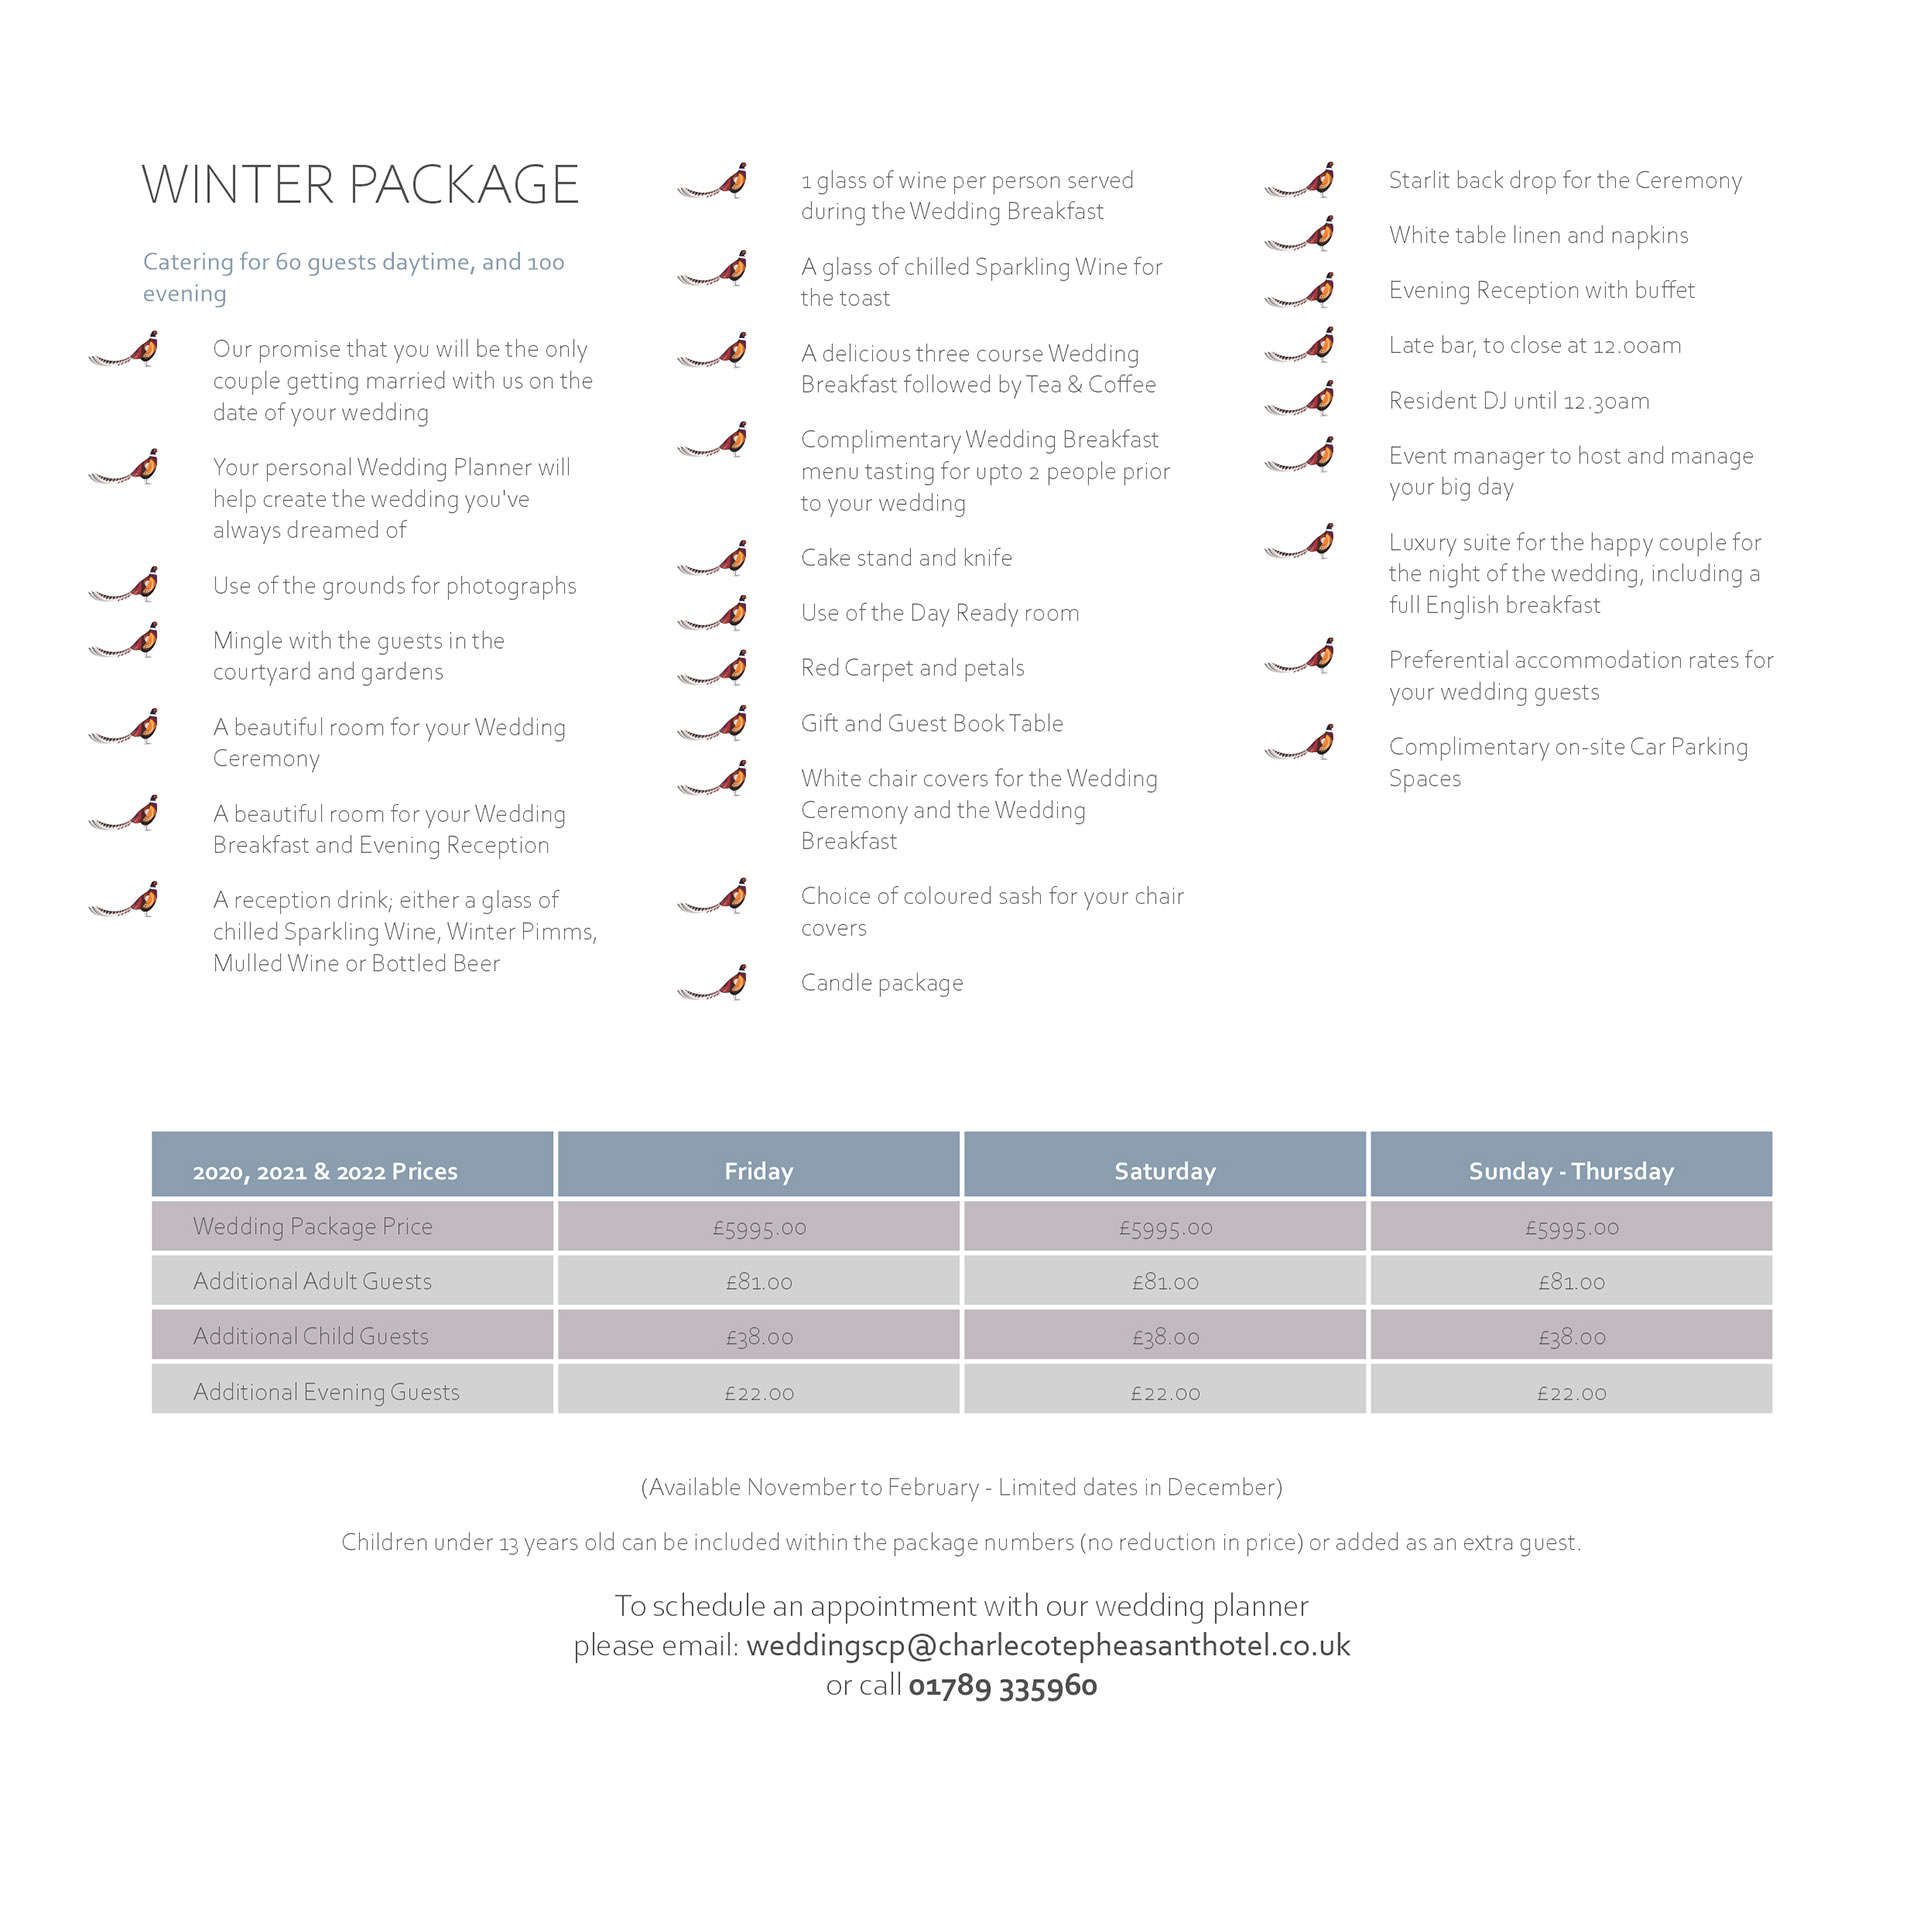 Winter package 1 at the Charlecote Pheasant Hotel